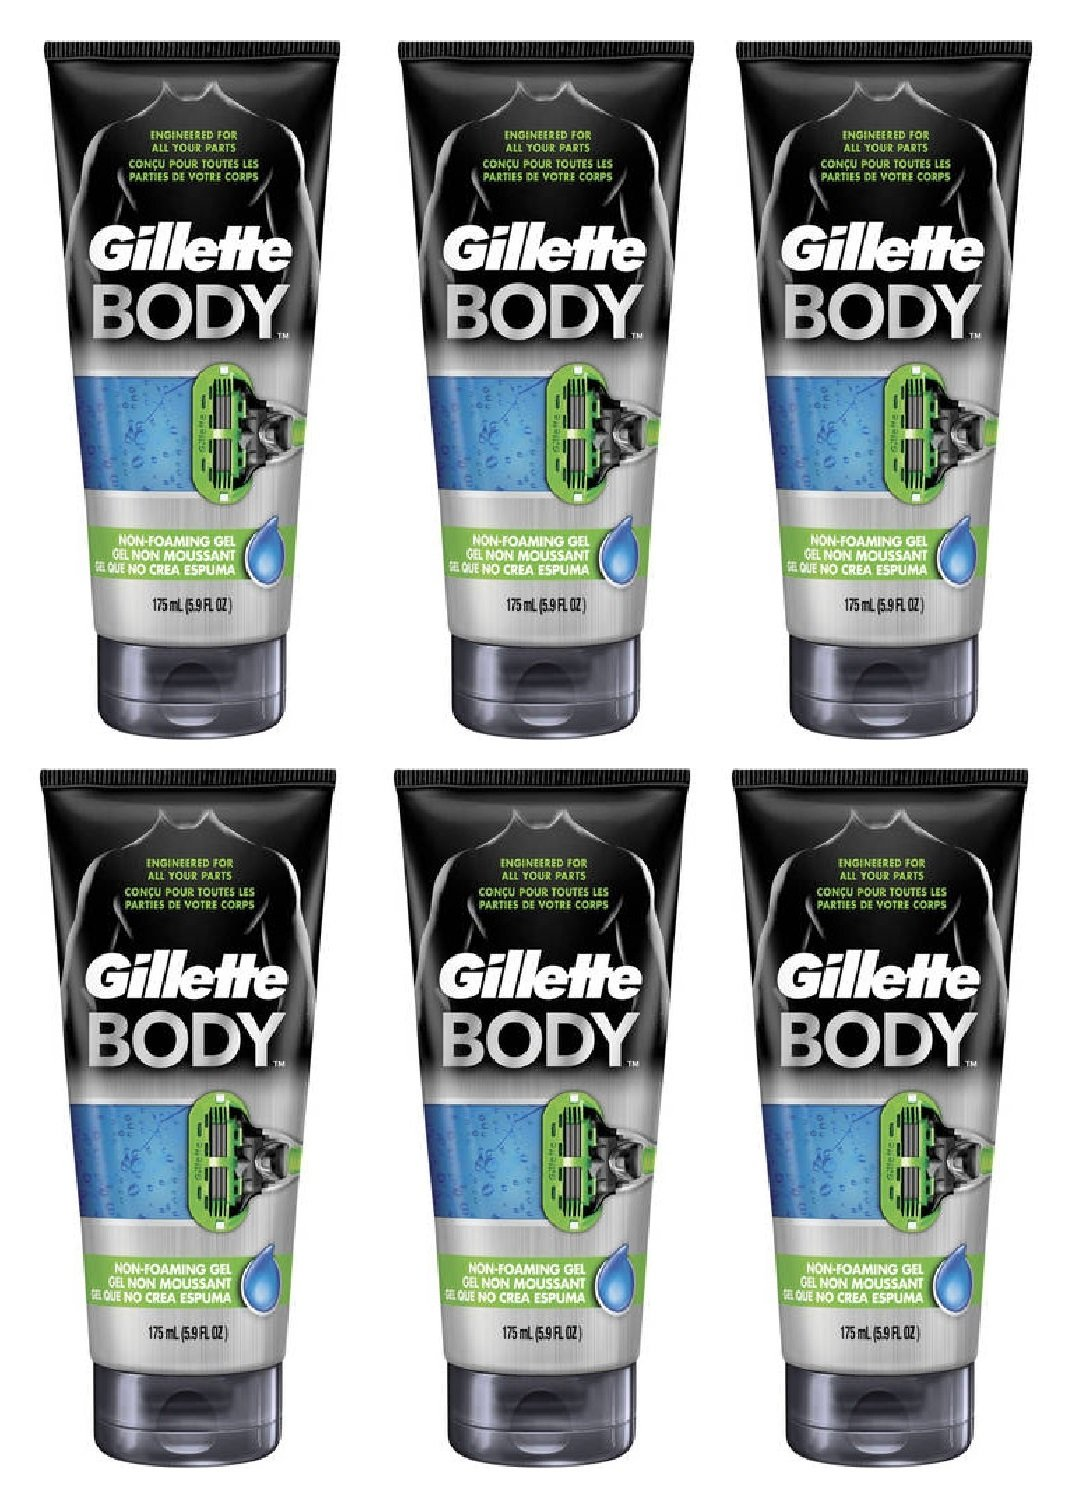 Gillette Body Non Foaming Shave Gel for Men, 5.9 Fl Oz (6 Pack) + FREE Luxury Luffa Loofah Bath Sponge On A Rope, Color May Vary